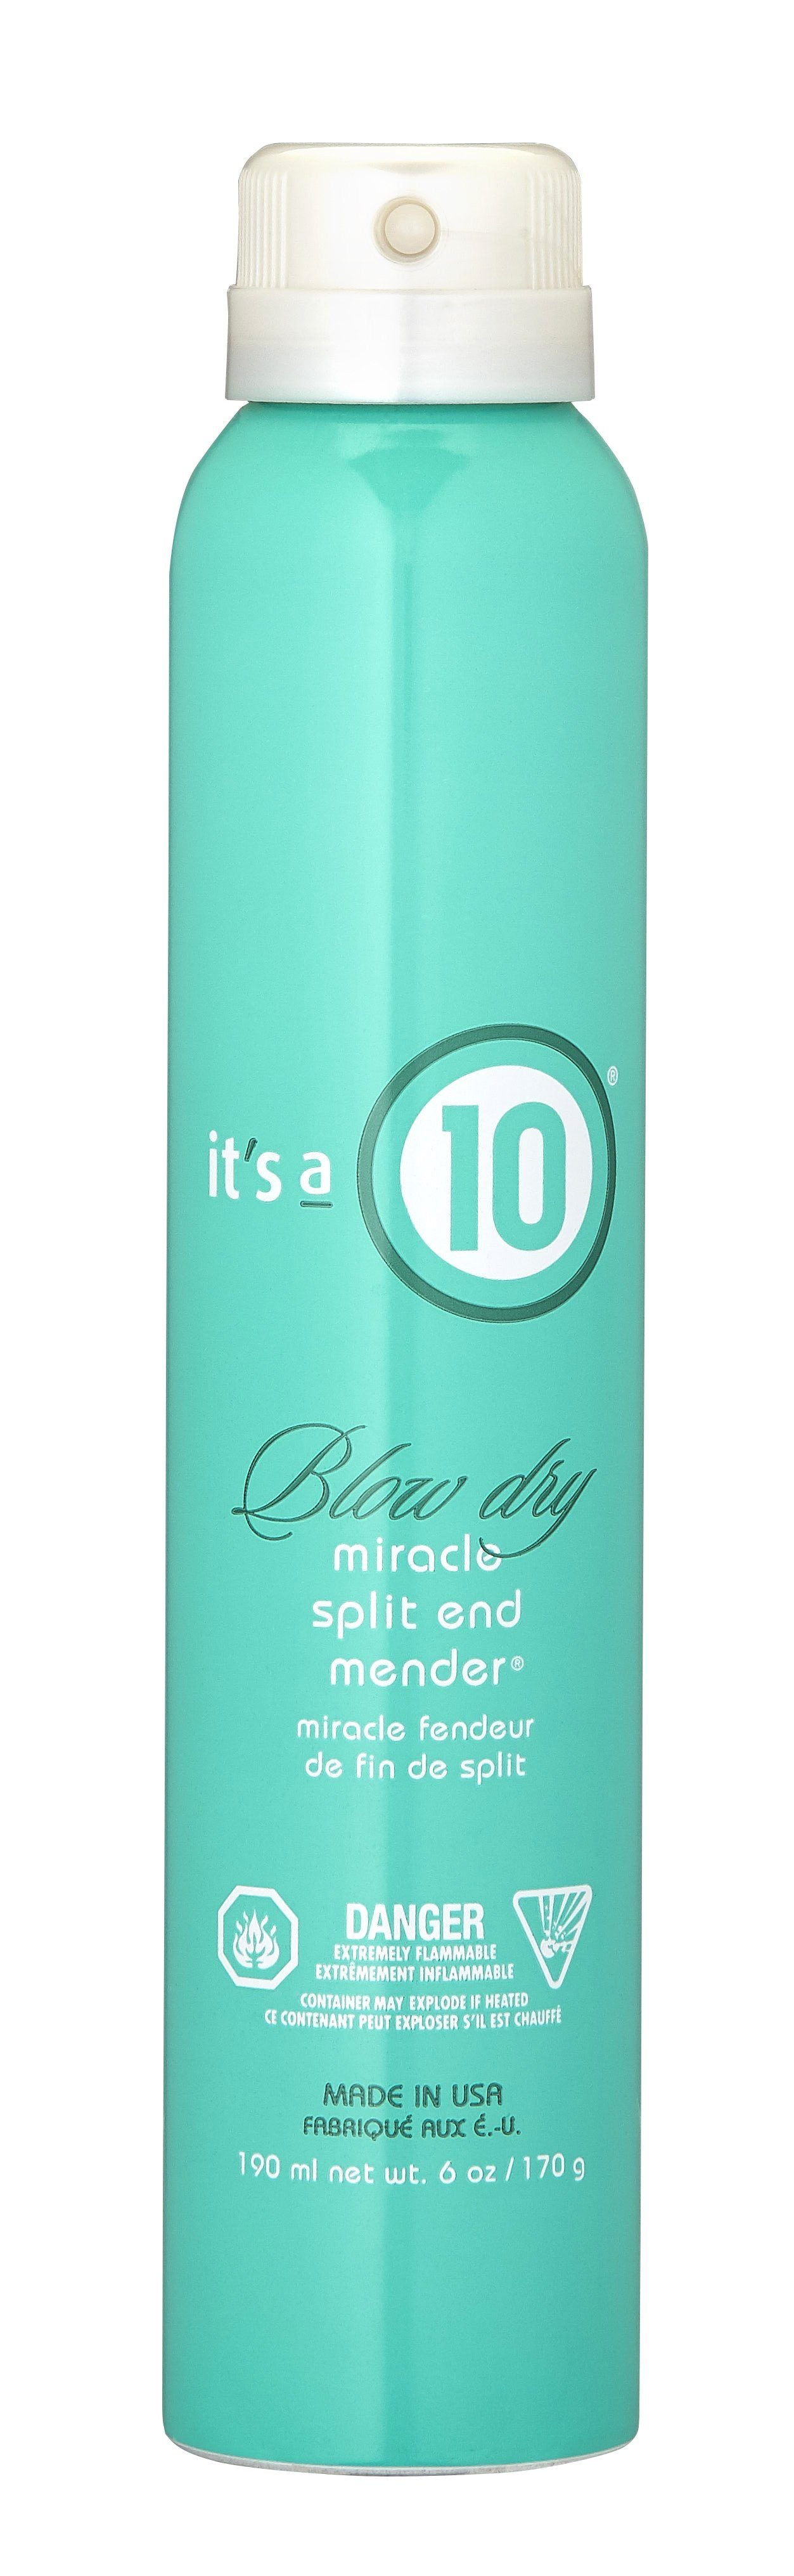 It's a 10 Miracle Blow Dry Split End Mender